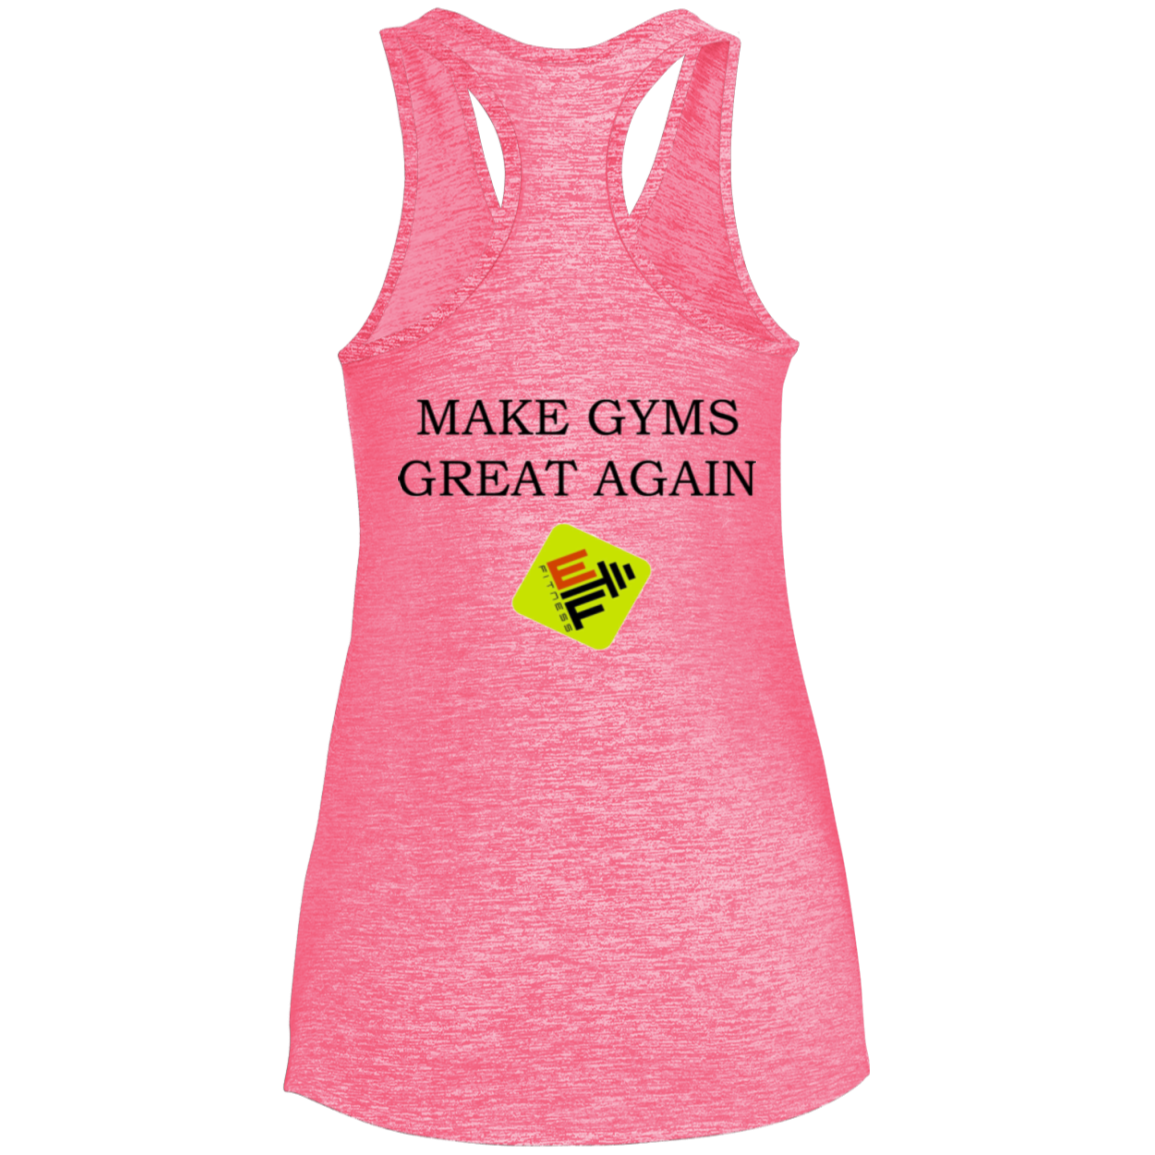 Make Gyms Great Sport-Tek Ladies' Moisture Wicking Electric Heather Racerback Tank